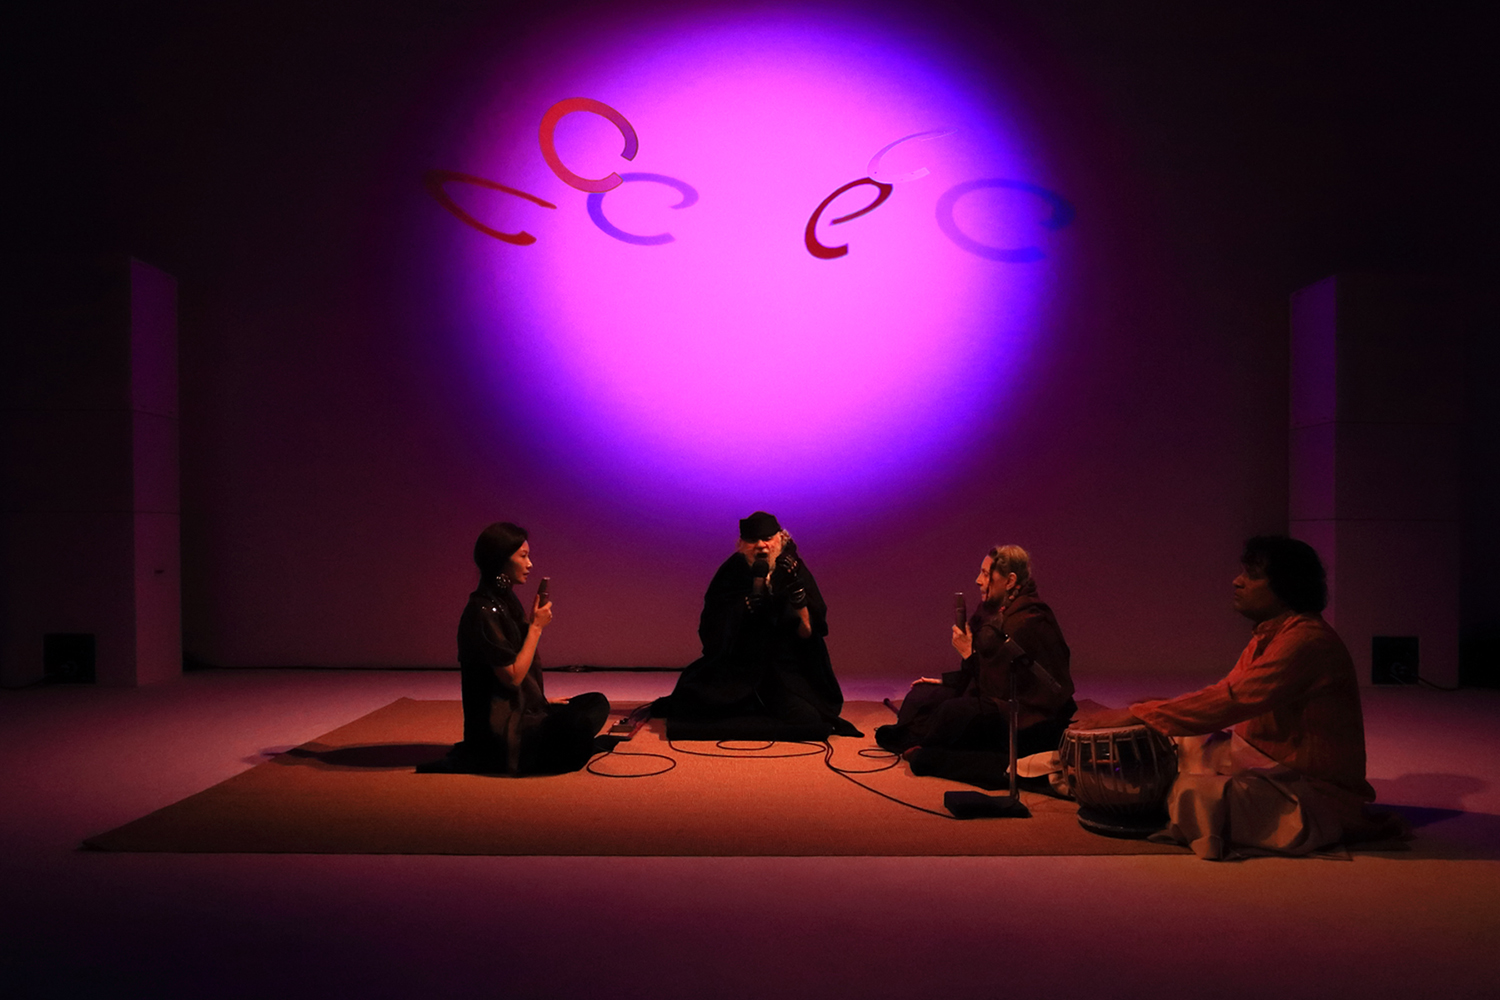 Four people sitting on the floor and singing together